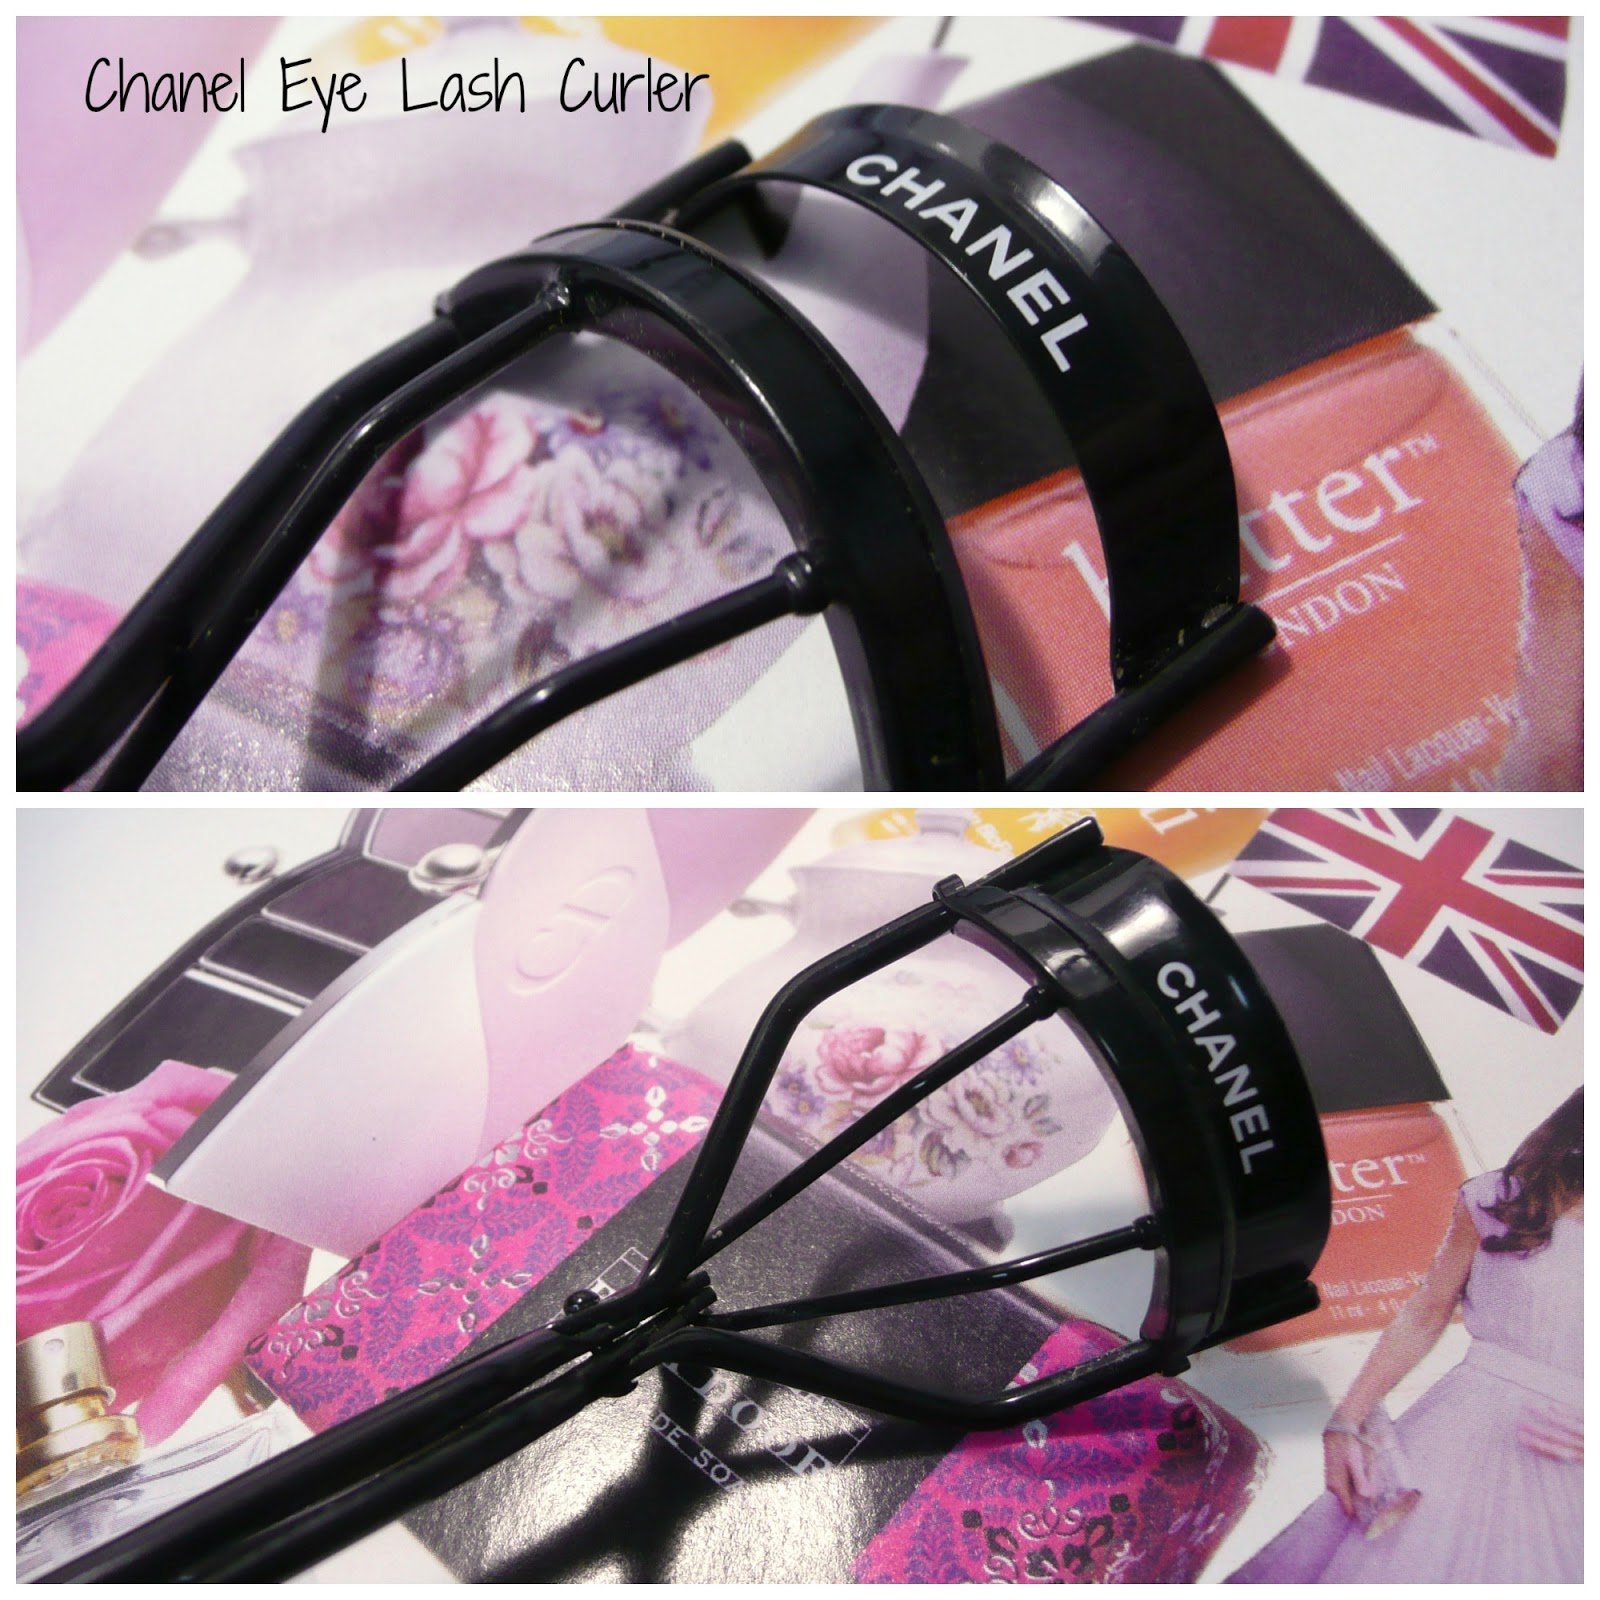 Chanel Eyelash Curler Review